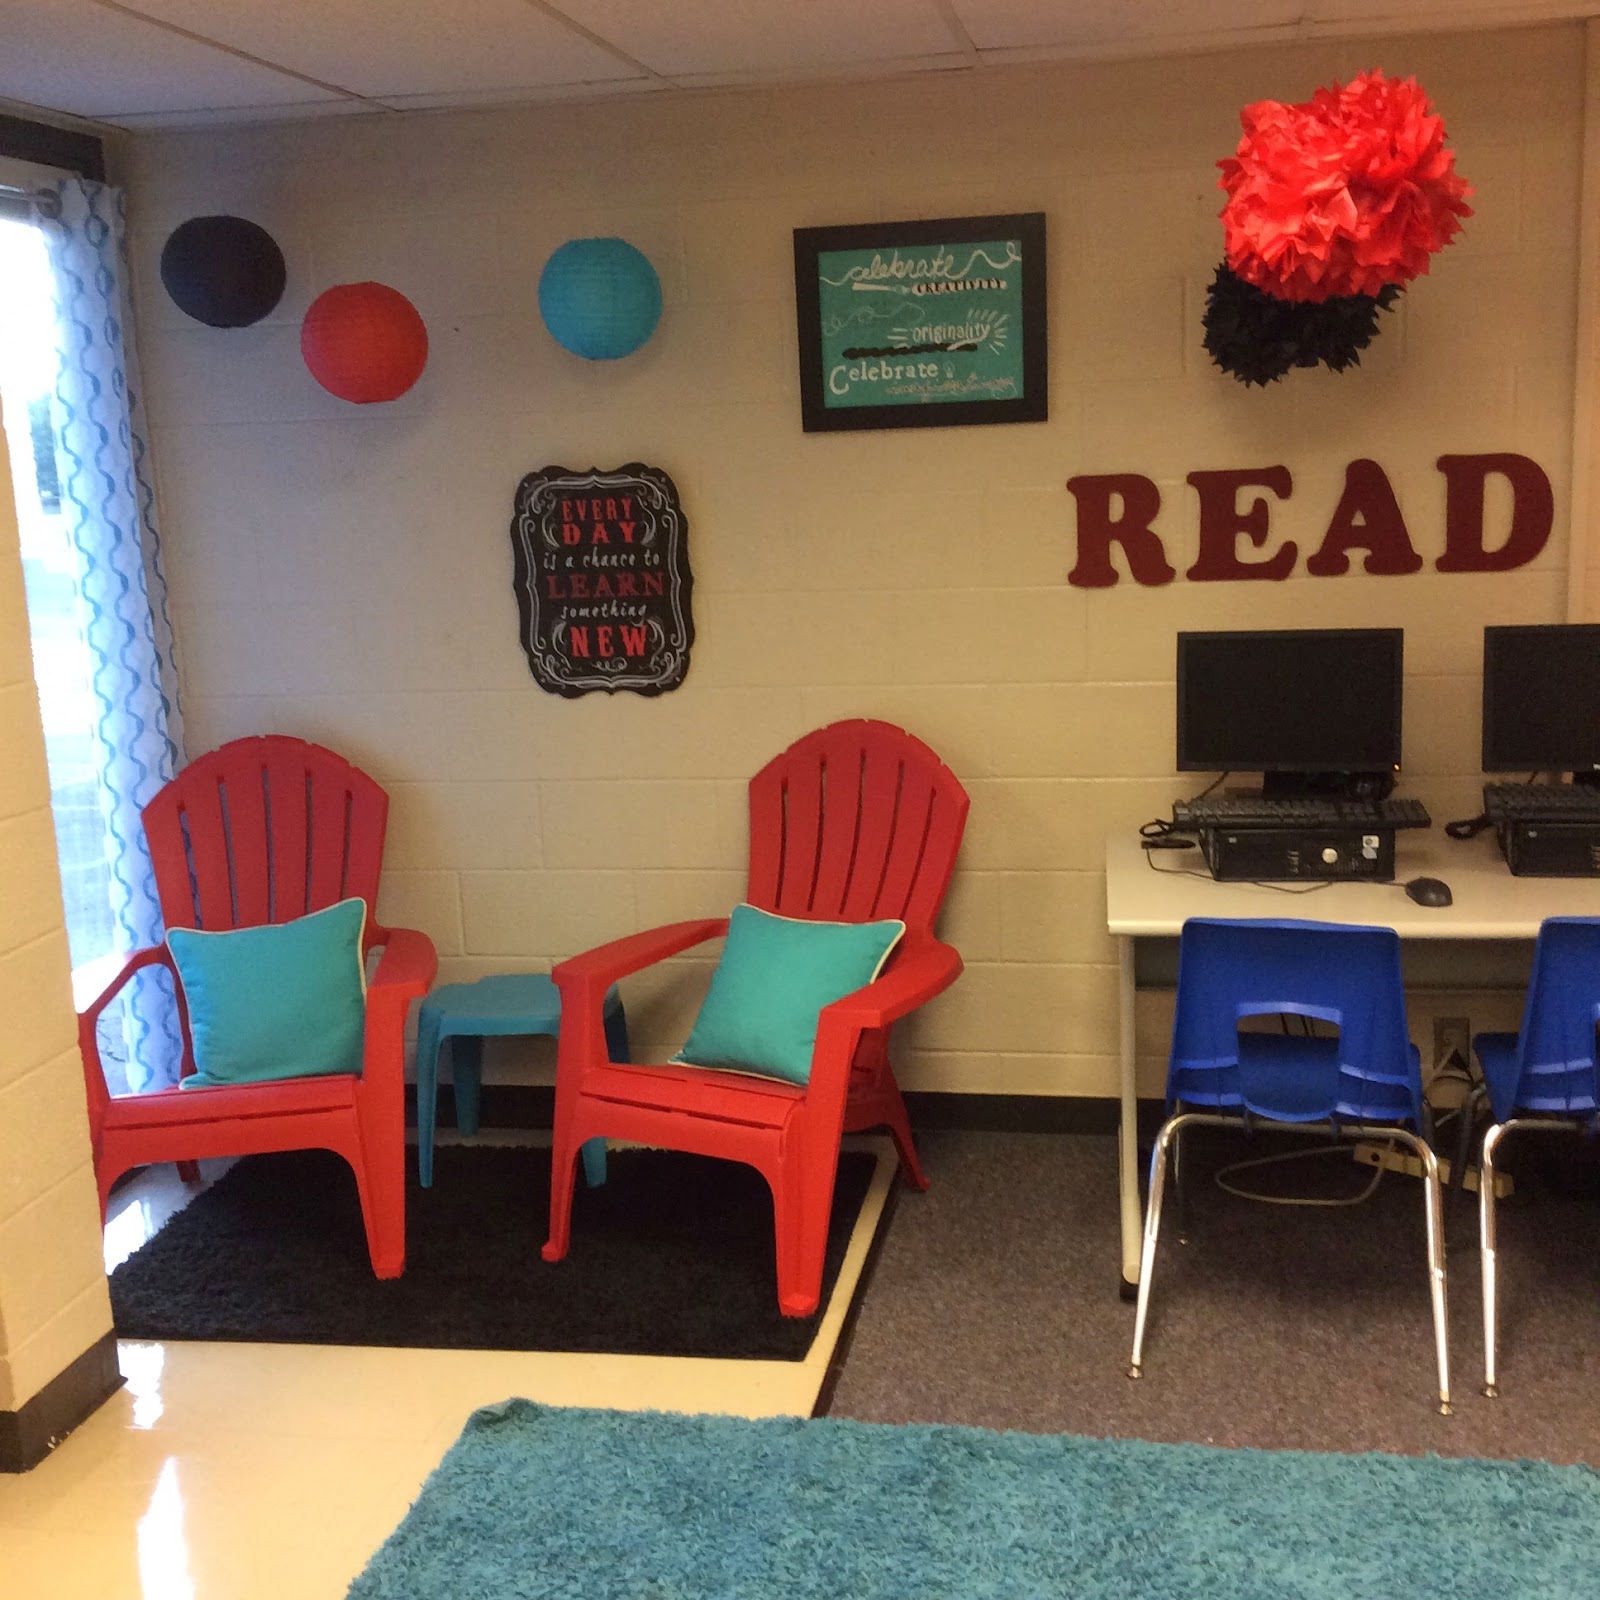 red adirondack chairs plastic roman chair exercise equipment the teacher dish: a 5th grade reading classroom tour